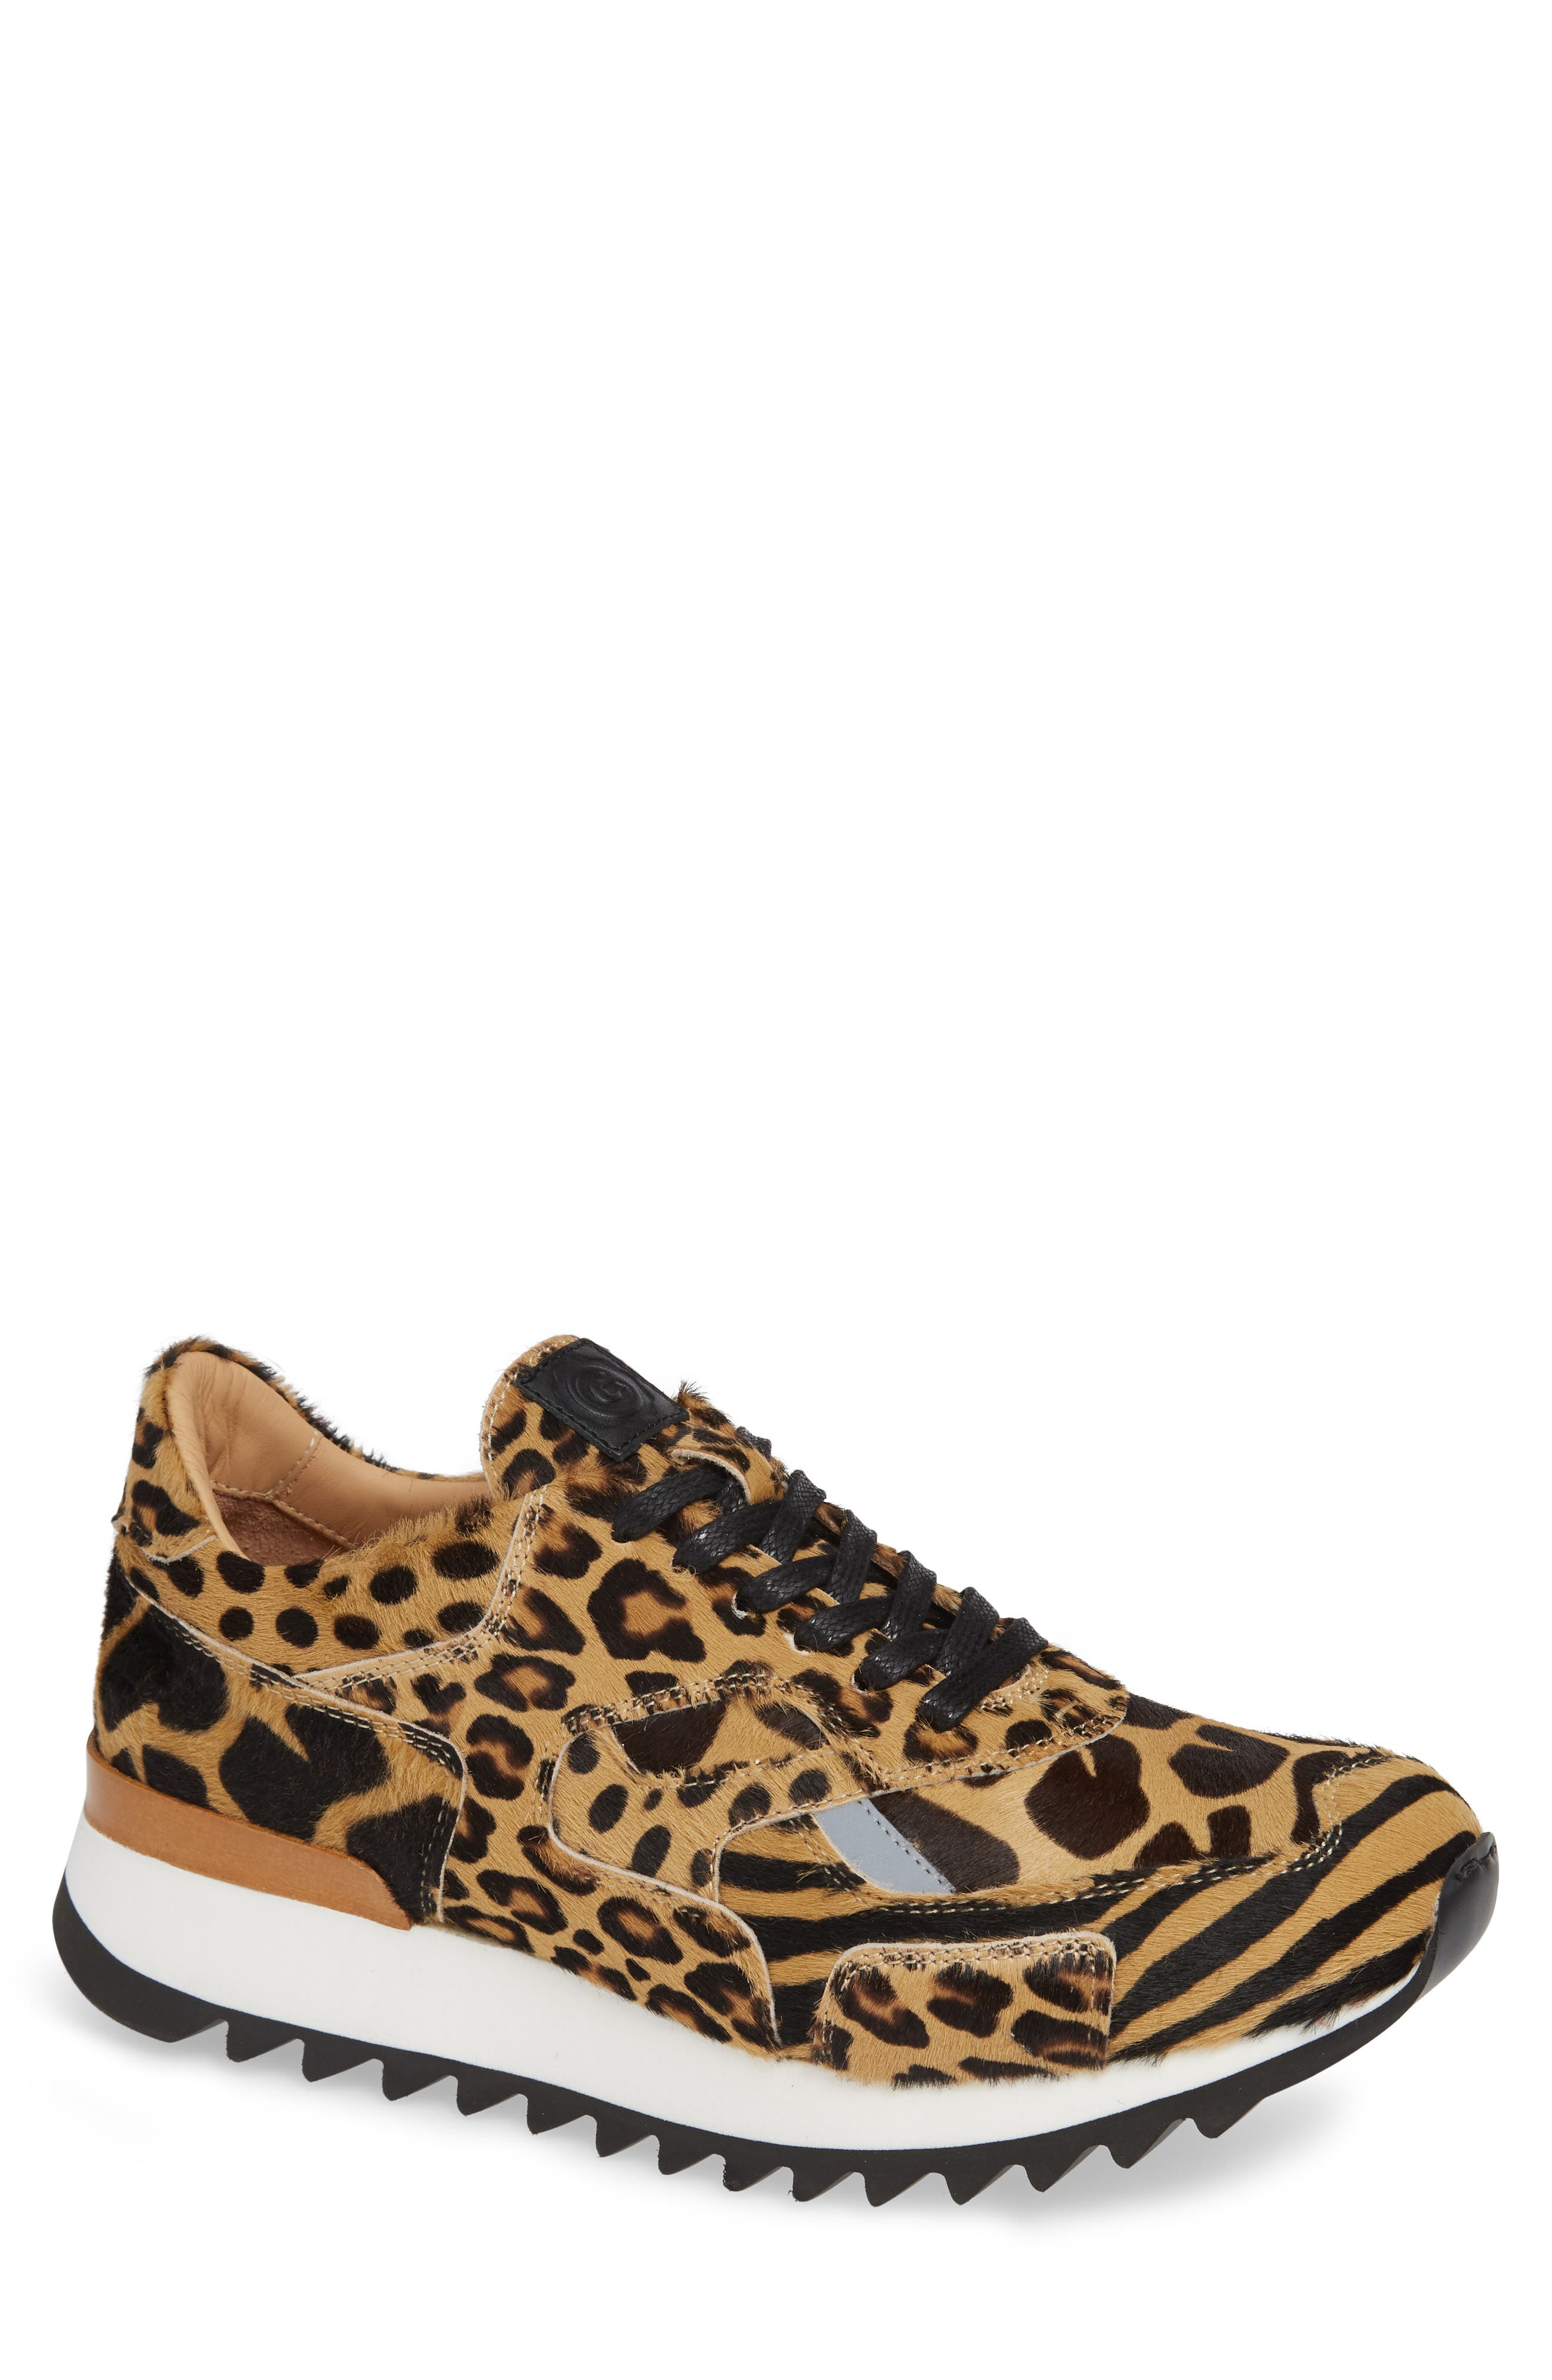 Nick Wooster x GREATS Pronto Genuine Calf Hair Sneaker,                             Main thumbnail 1, color,                             209